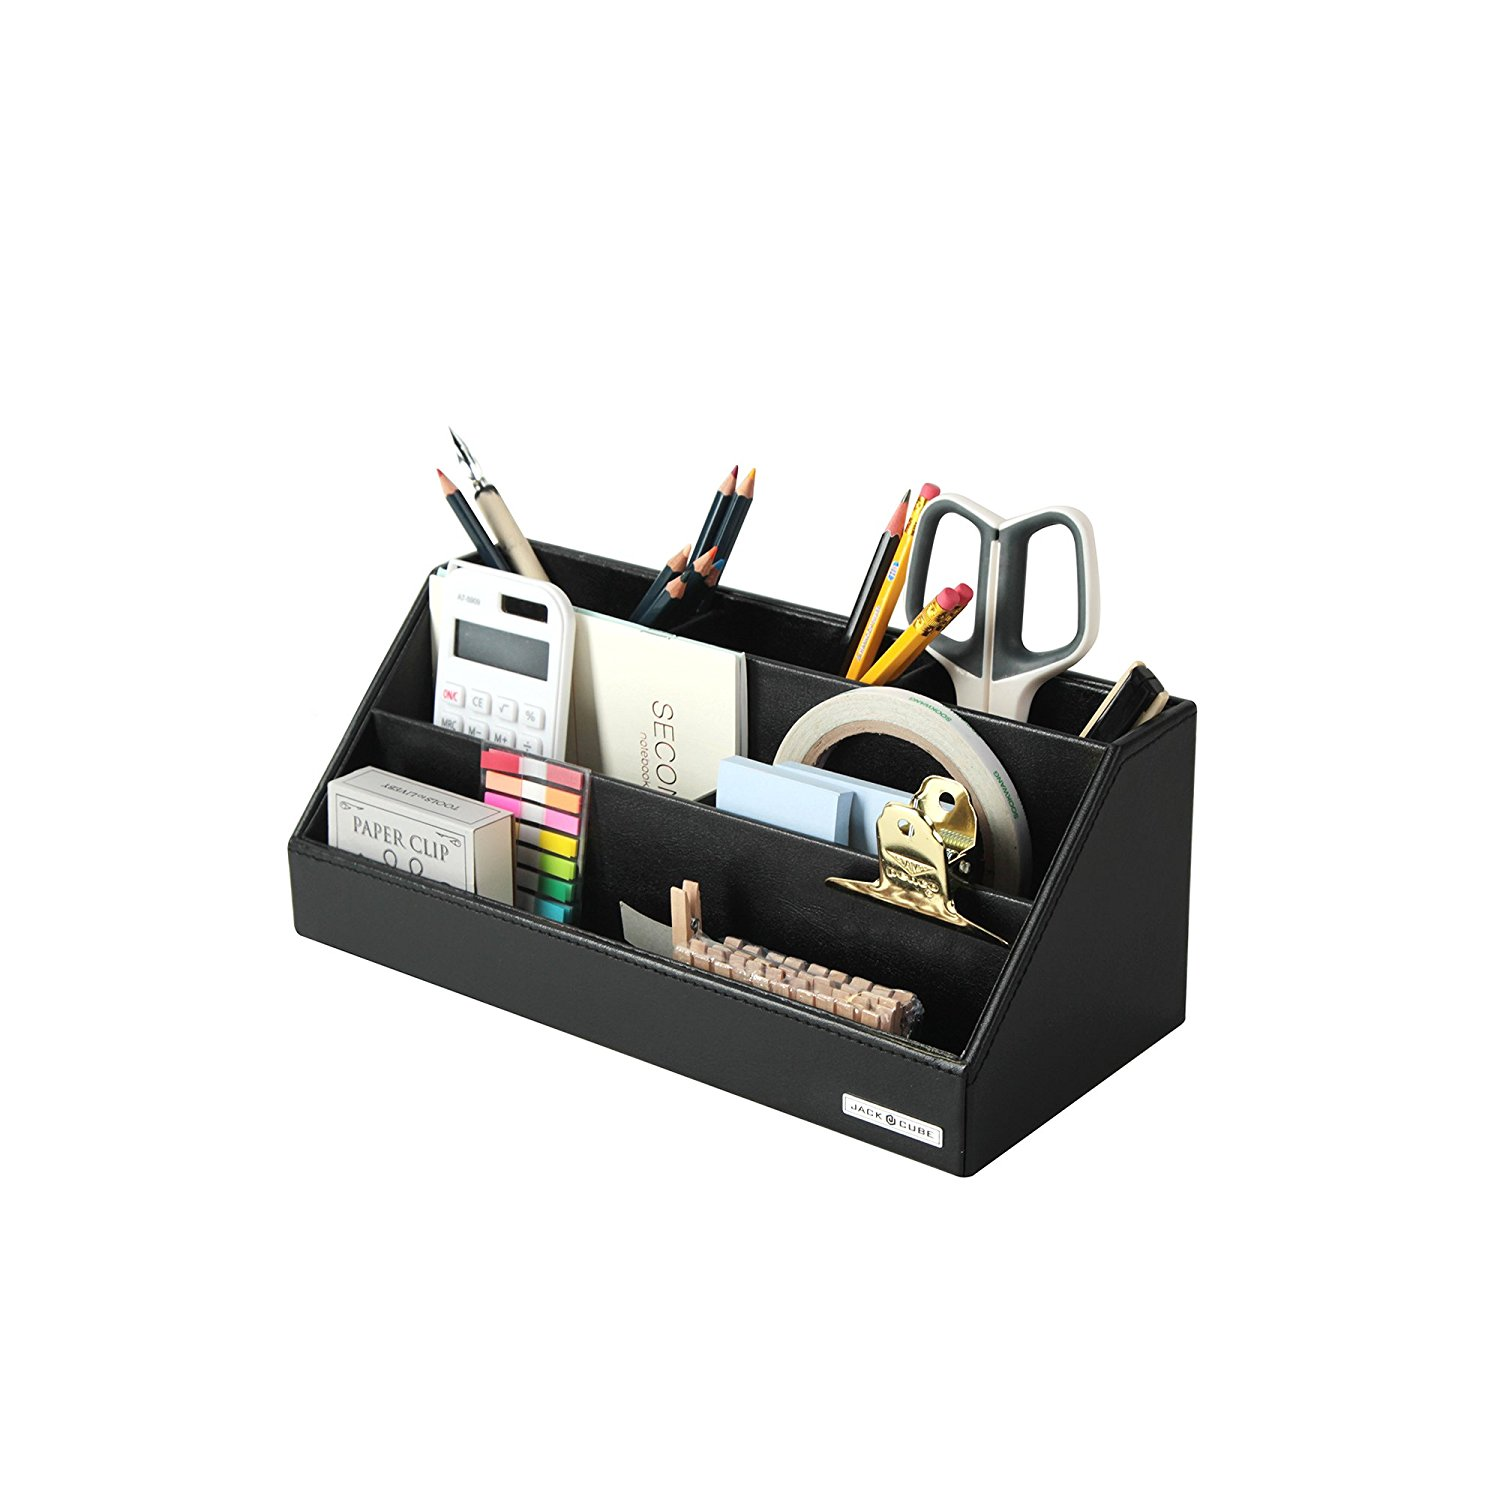 JackCubeDesign Leather Remote Control Office Desk Stationery Organizer Supplies Storage Box Case Caddy Tray Cosmetic Display Organizer Holder Phone Stand(Black, 11.8 x 5.3 x 4.7 inches)-:MK279A